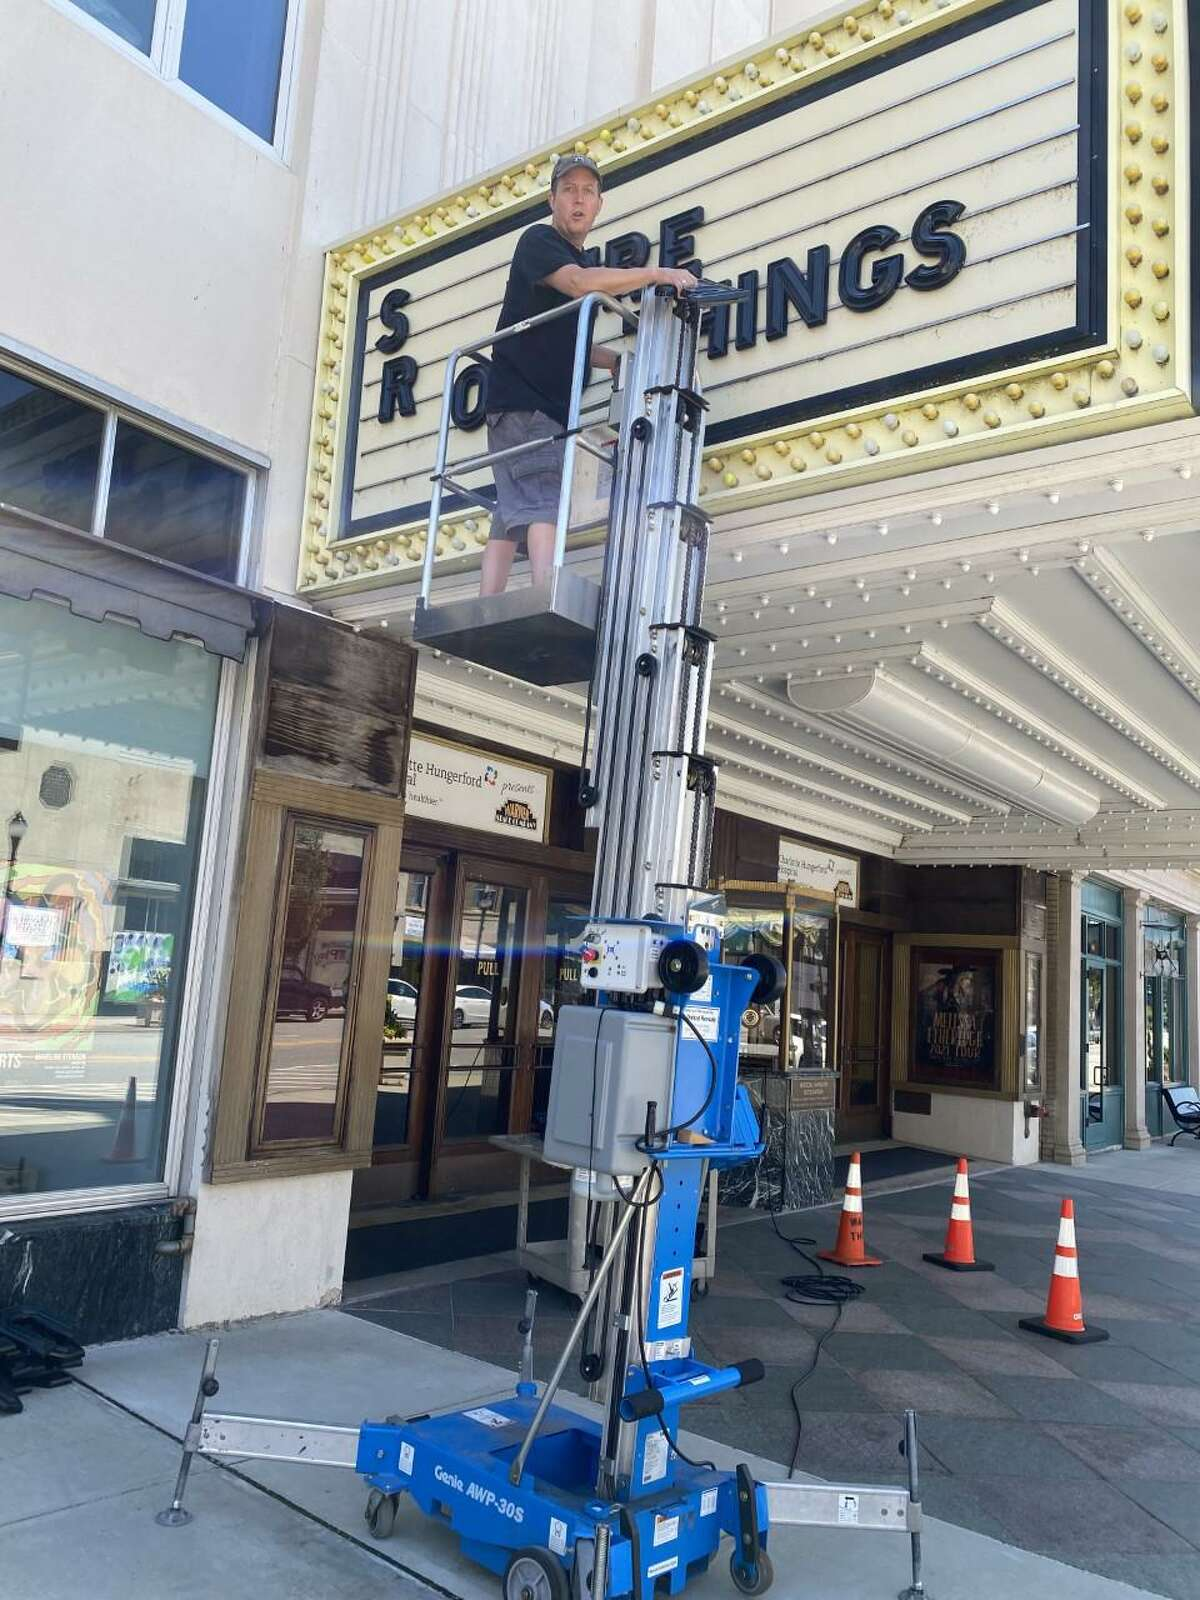 Woody Dick, the Warner Theatre's tech director, sets lettering on the theater's marquee for upcoming events, now that pandemic restrictions have eased.